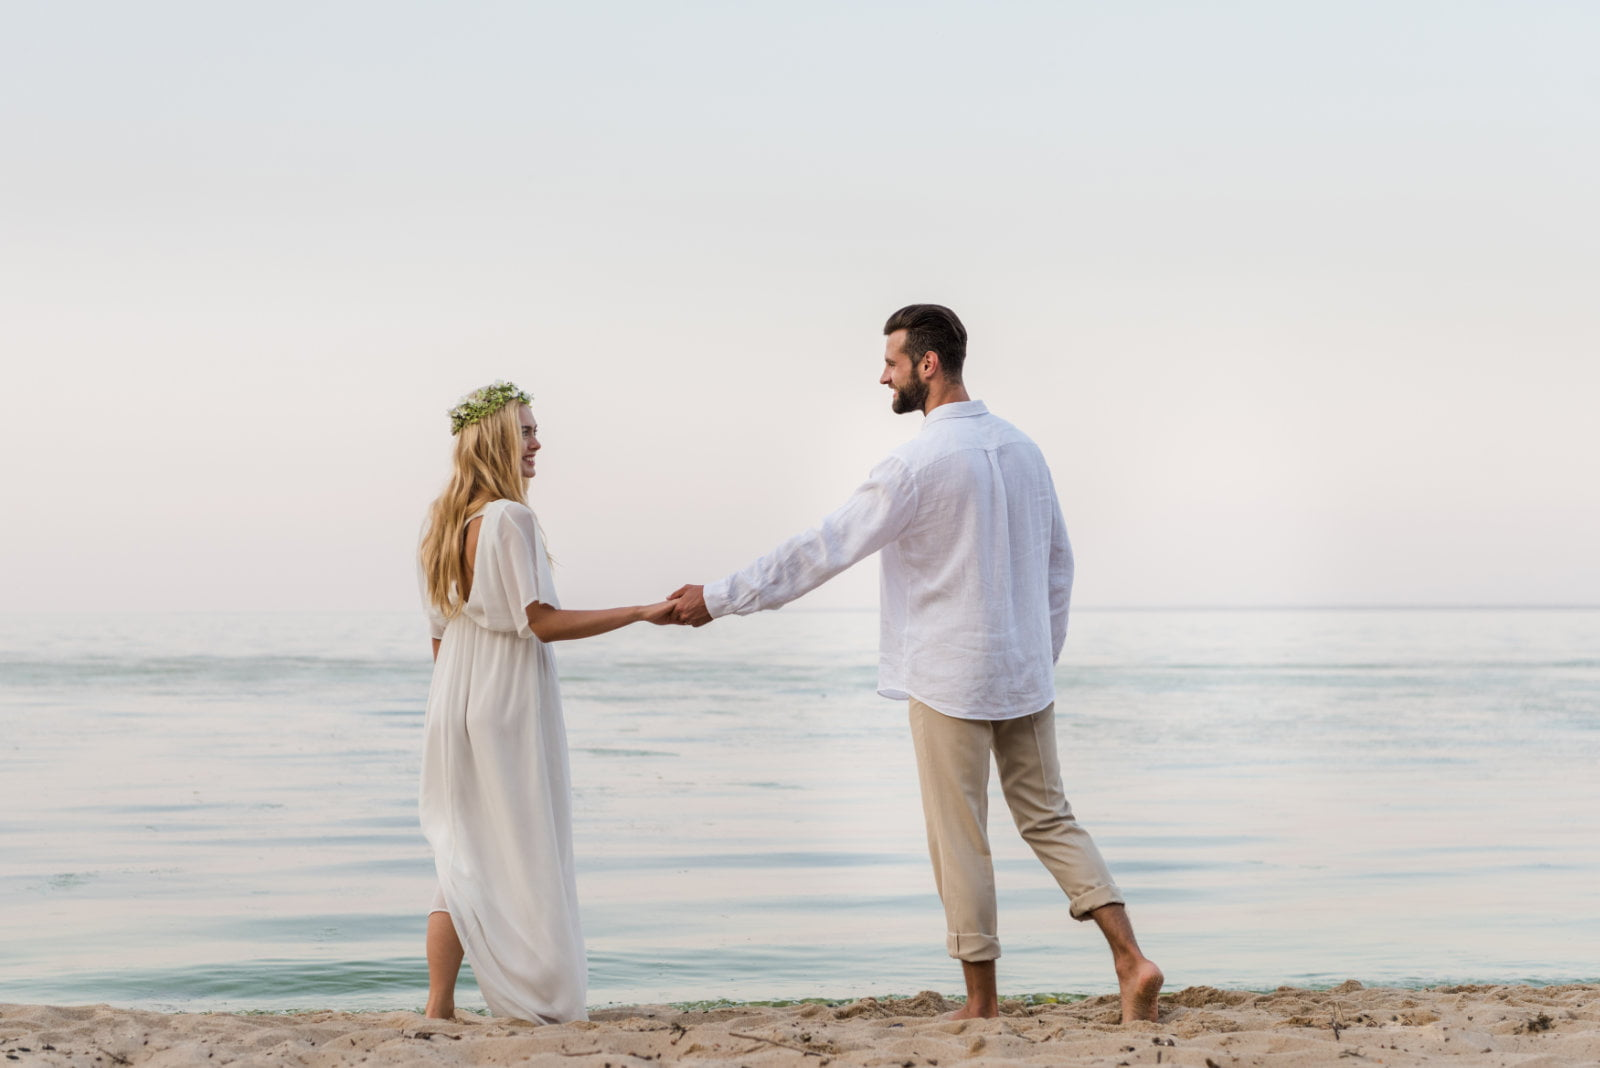 The Do's and Don'ts of a Beach Wedding